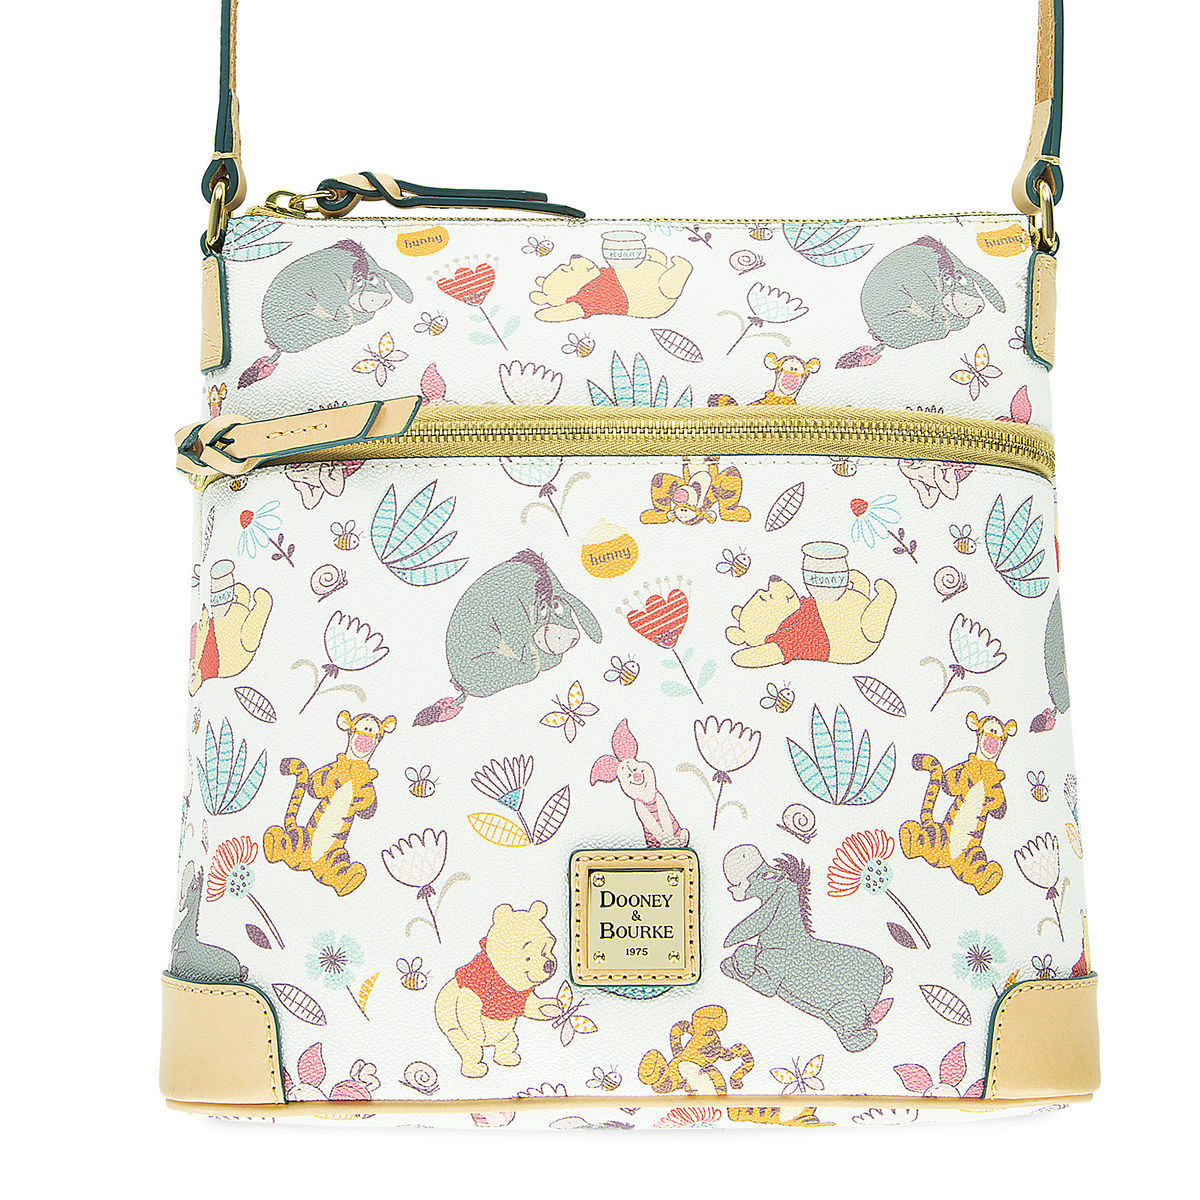 Product Image Of Winnie The Pooh And Pals Letter Carrier Bag By Dooney Bourke